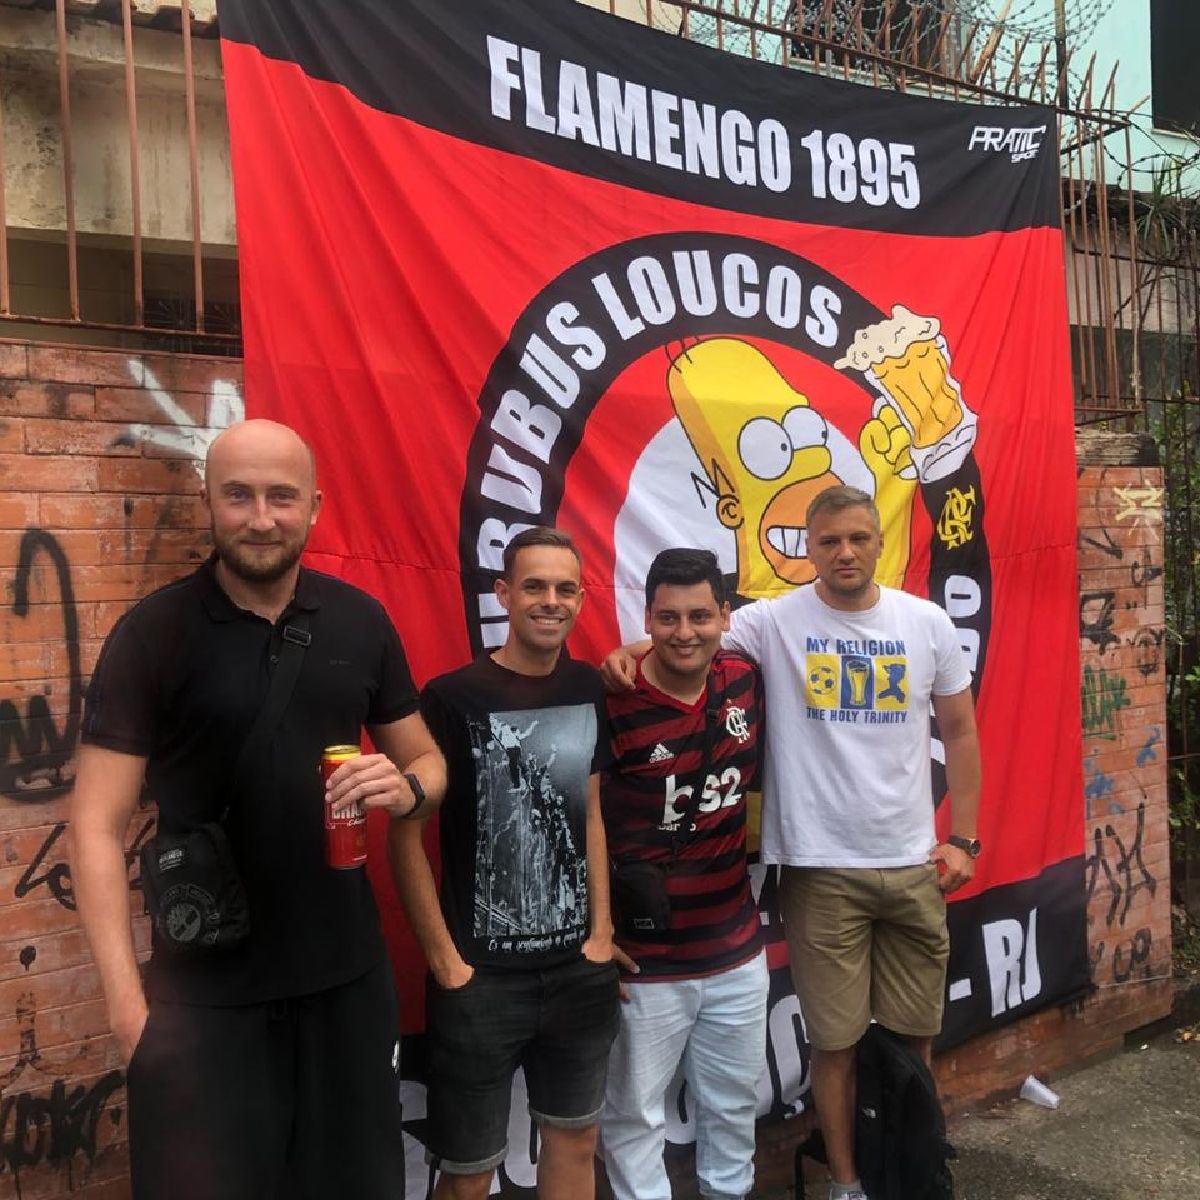 Day 10 - Flamengo Match Day Experience